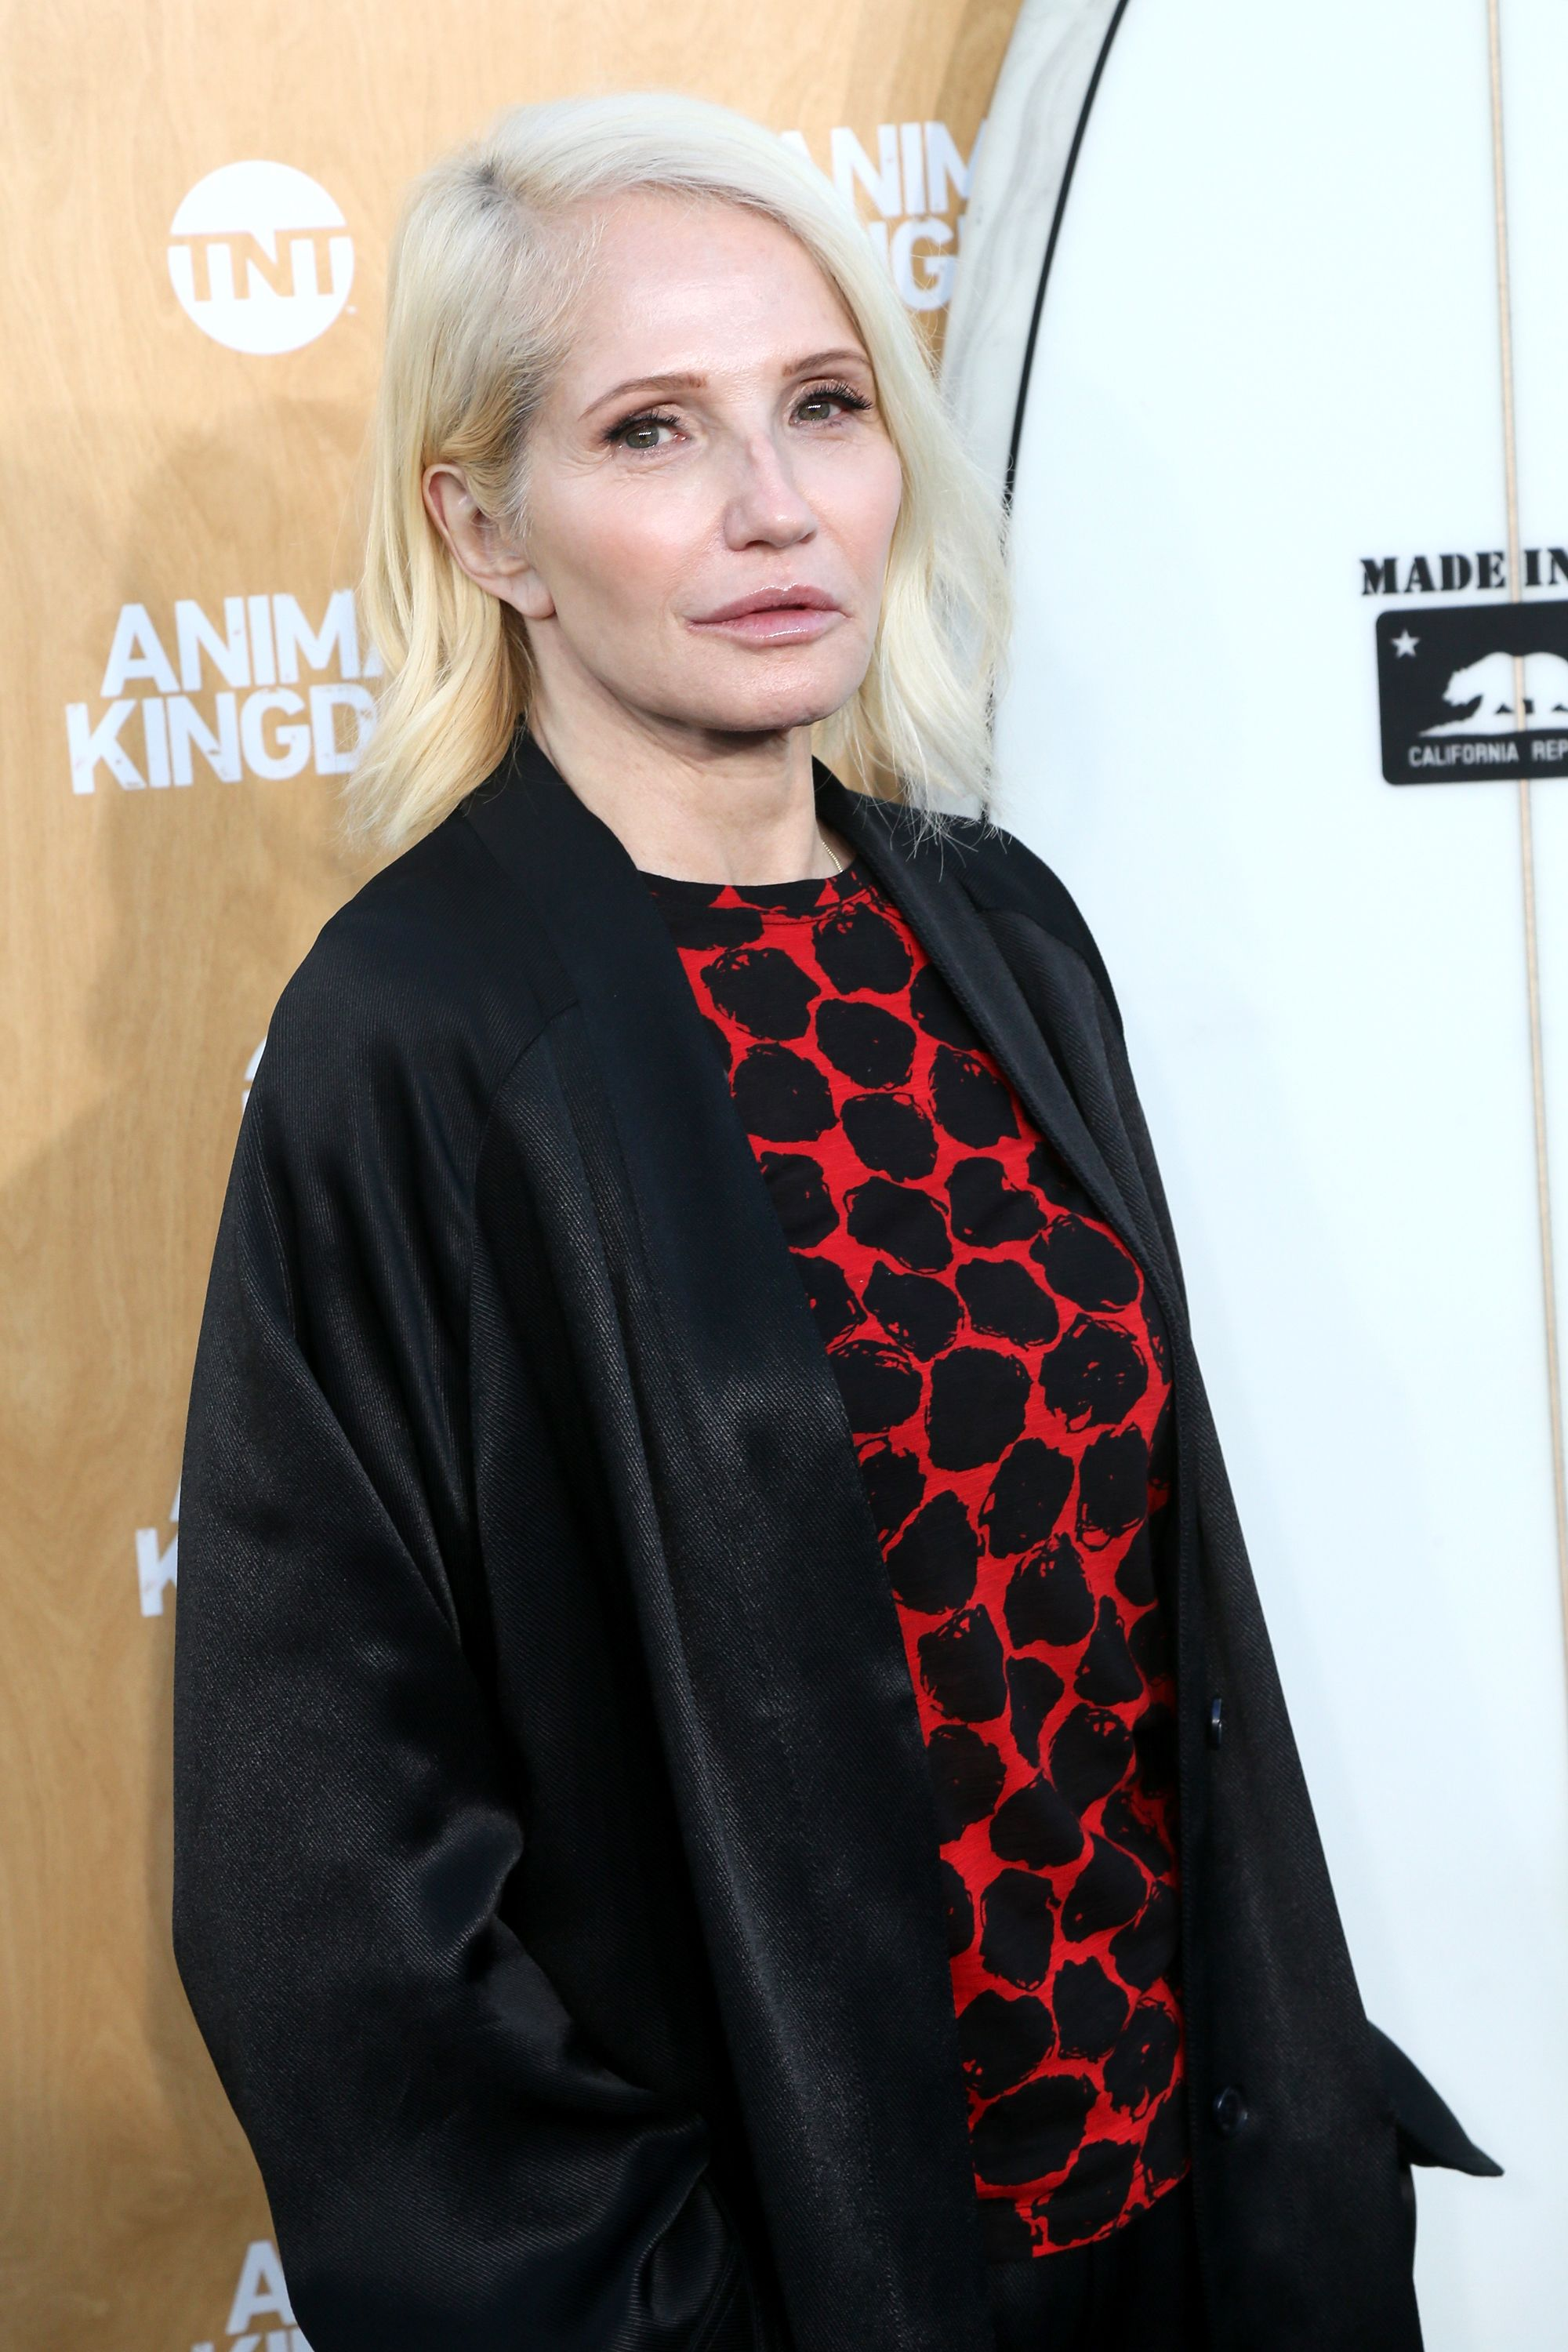 """Ellen Barkin at the premiere of TNT's """"Animal Kingdom"""" held at The Rose Room on June 8, 2016, in Venice, California 